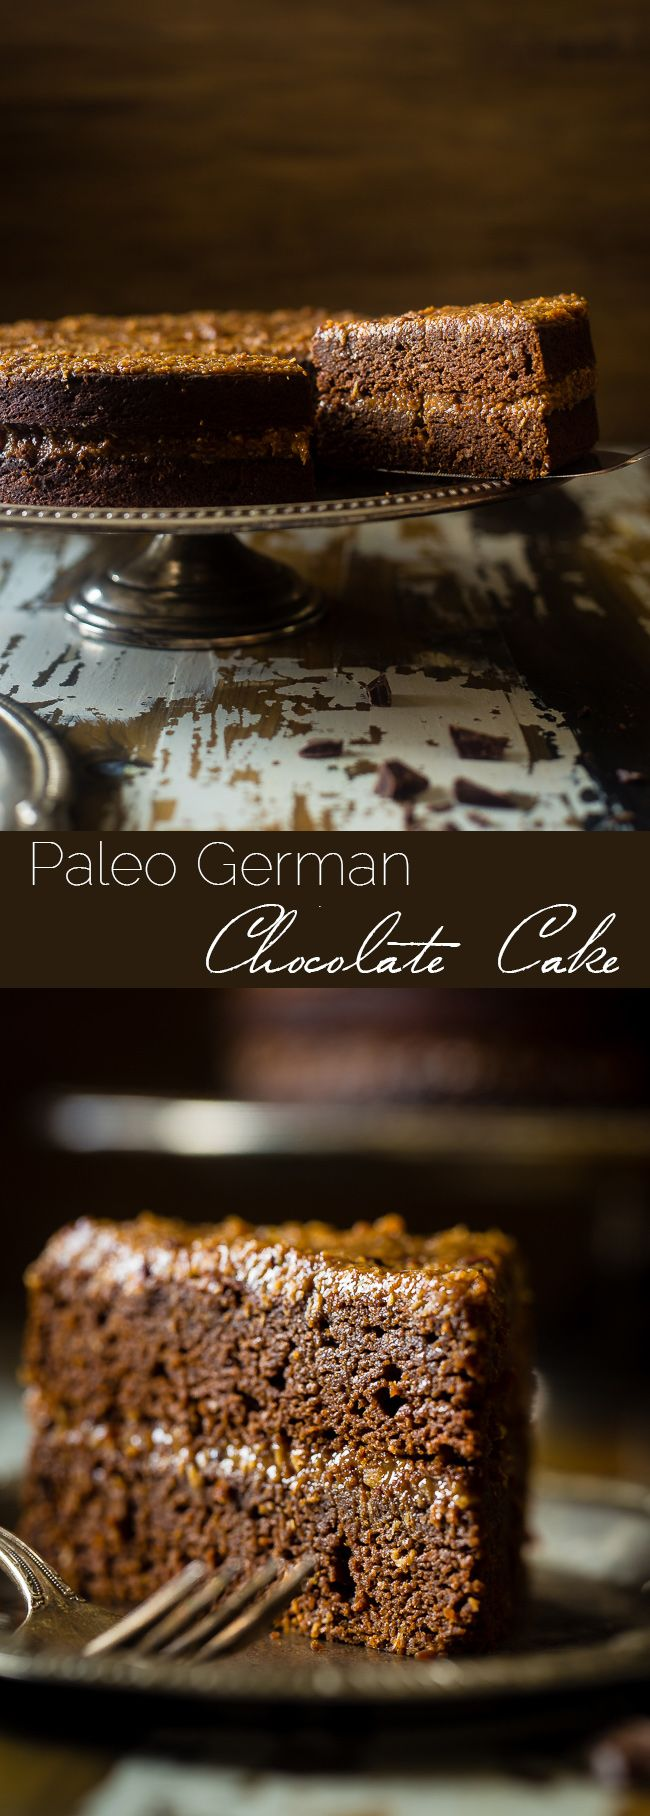 Paleo German Chocolate Cake - You'd never know this rich, moist German Chocolate Cake is a healthy remake that is paleo friendly and gluten, grain, oil, butter and refined sugar free! | Foodfaithfitness.com | @FoodFaithFit